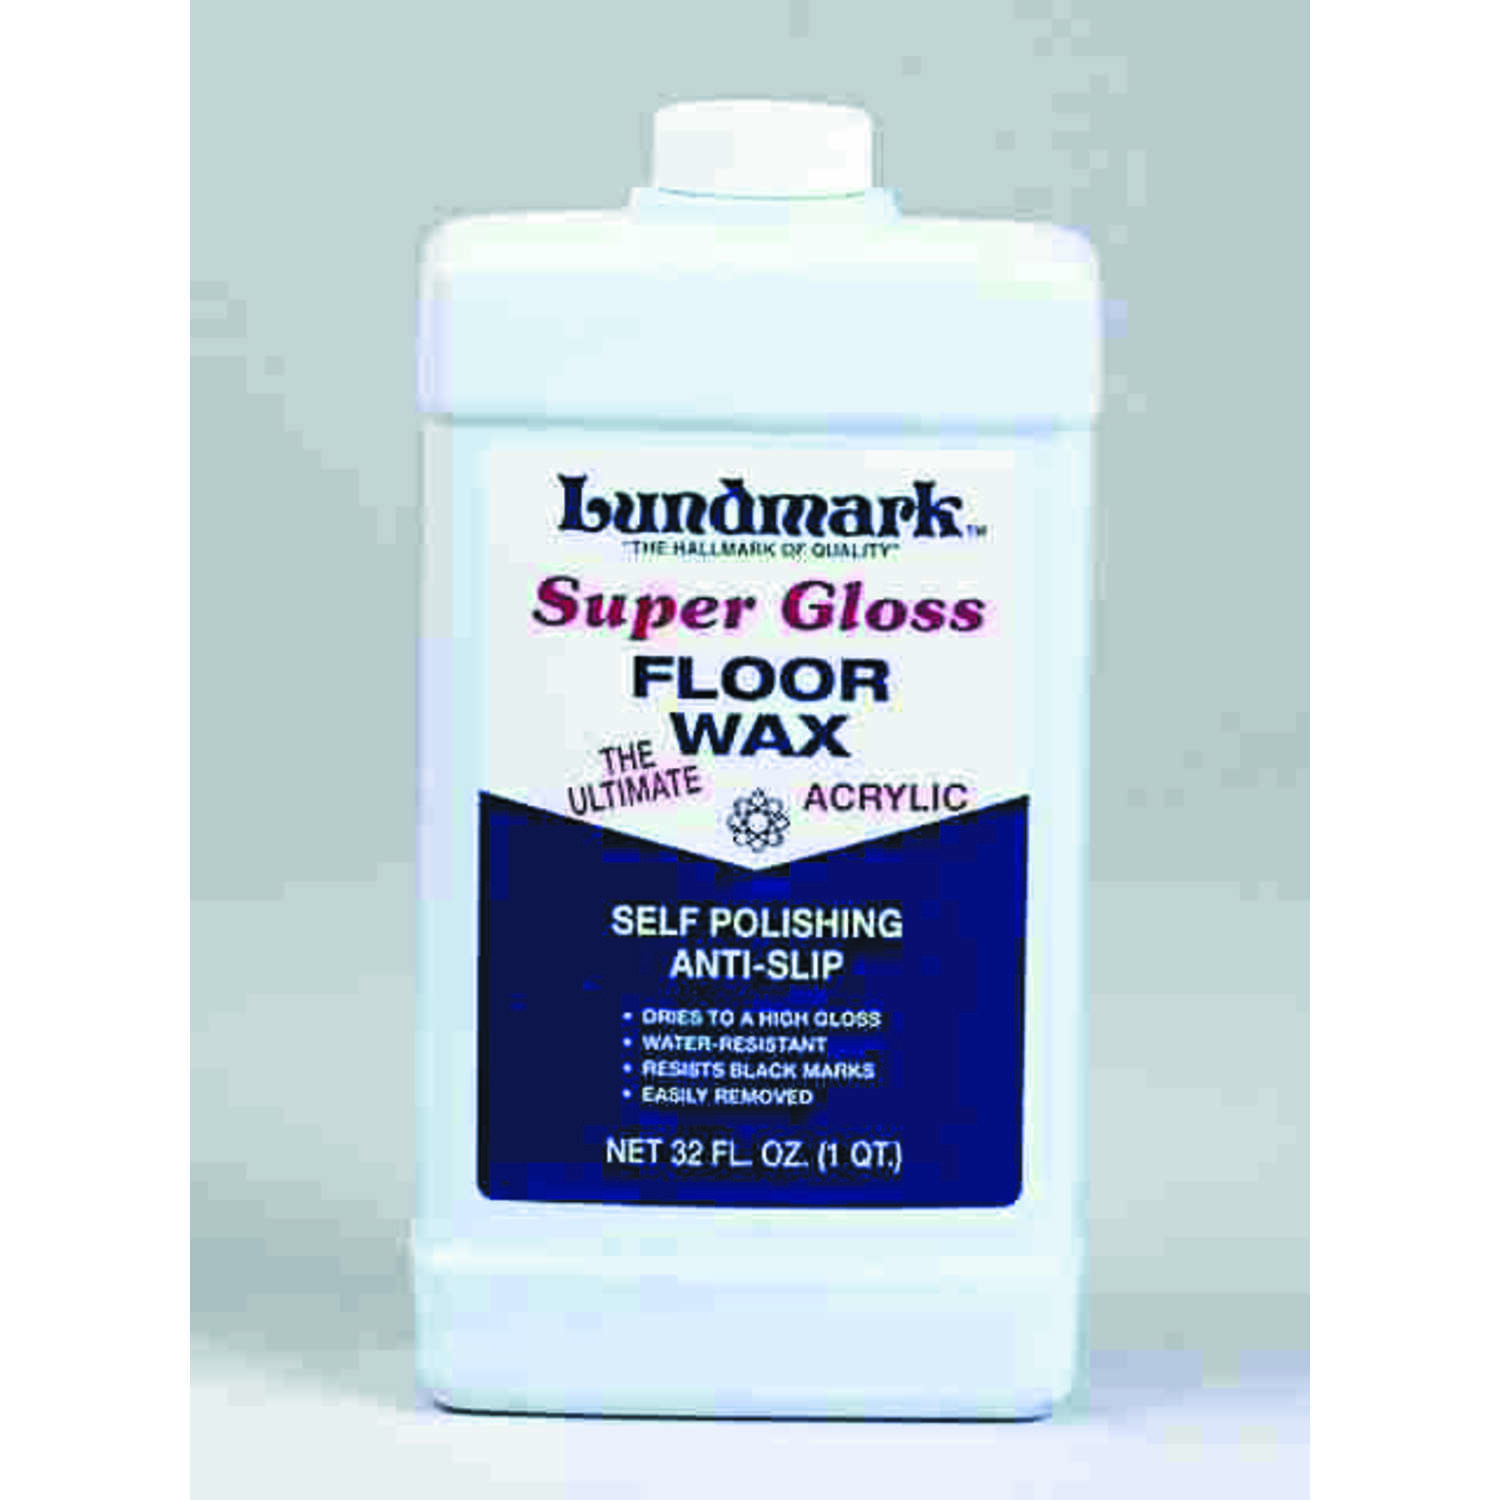 Lundmark  Super Gloss  Anti-Slip Floor Wax  Liquid  32 oz.